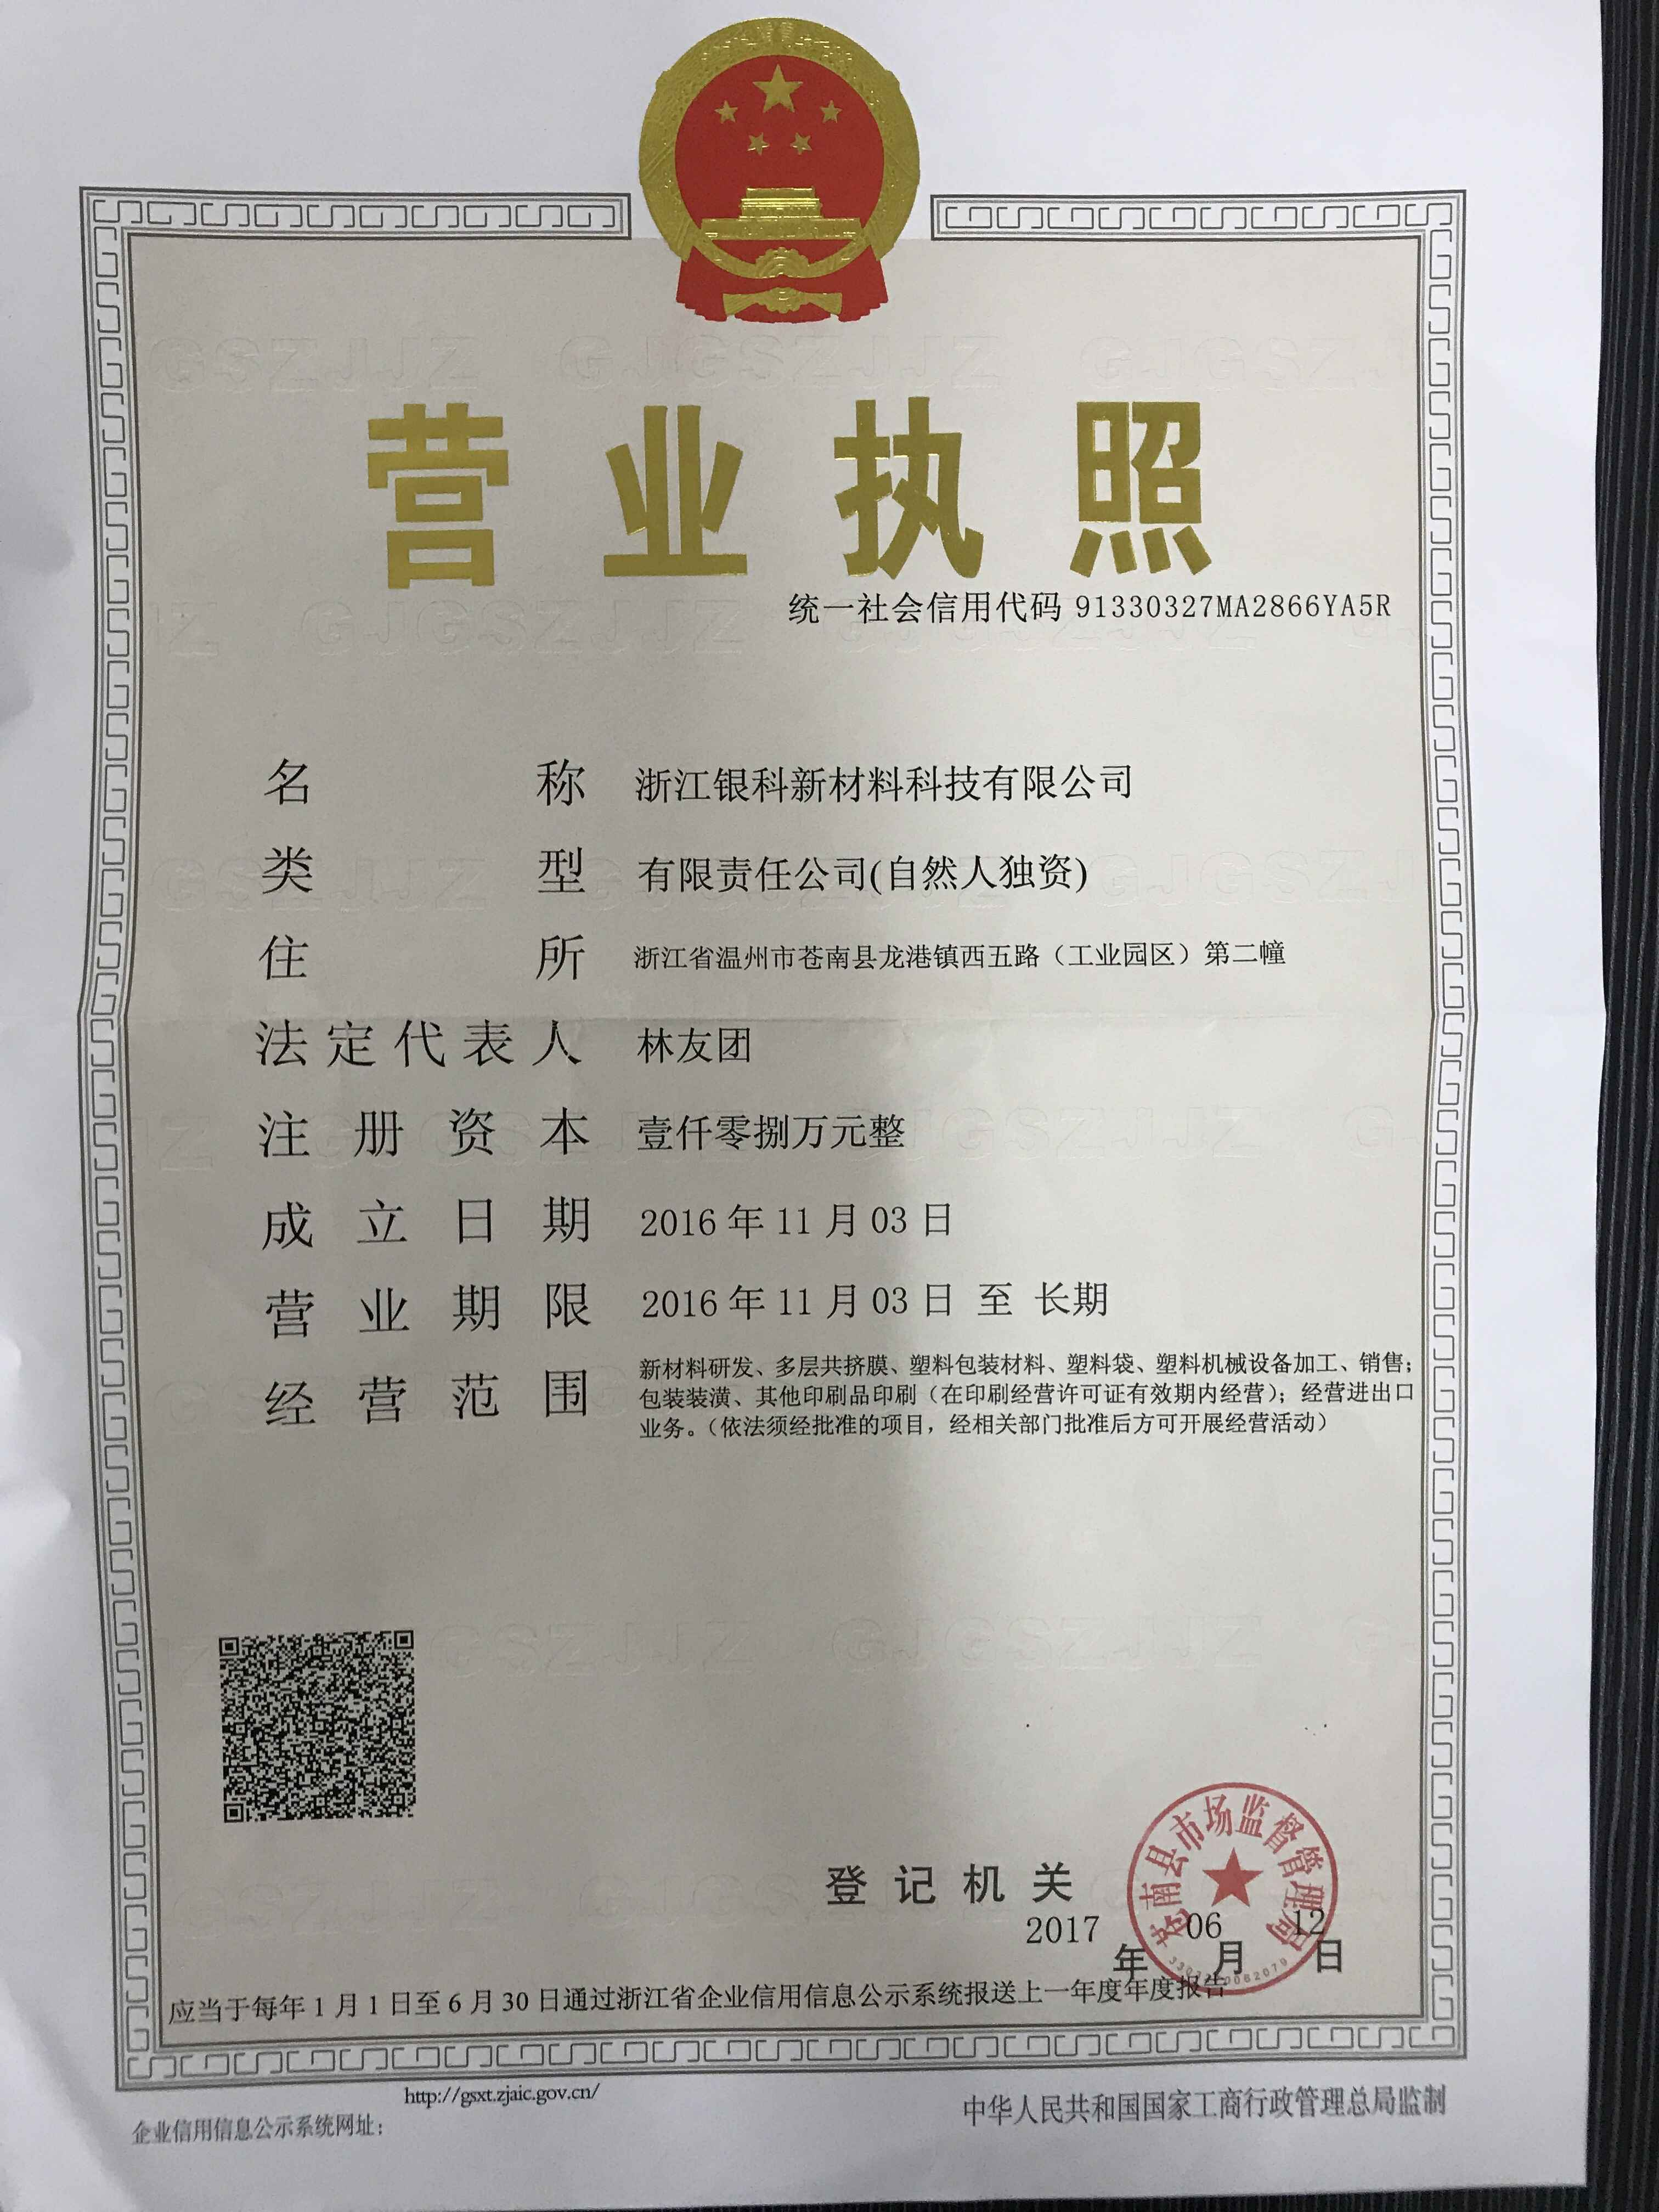 Business license of Yinco